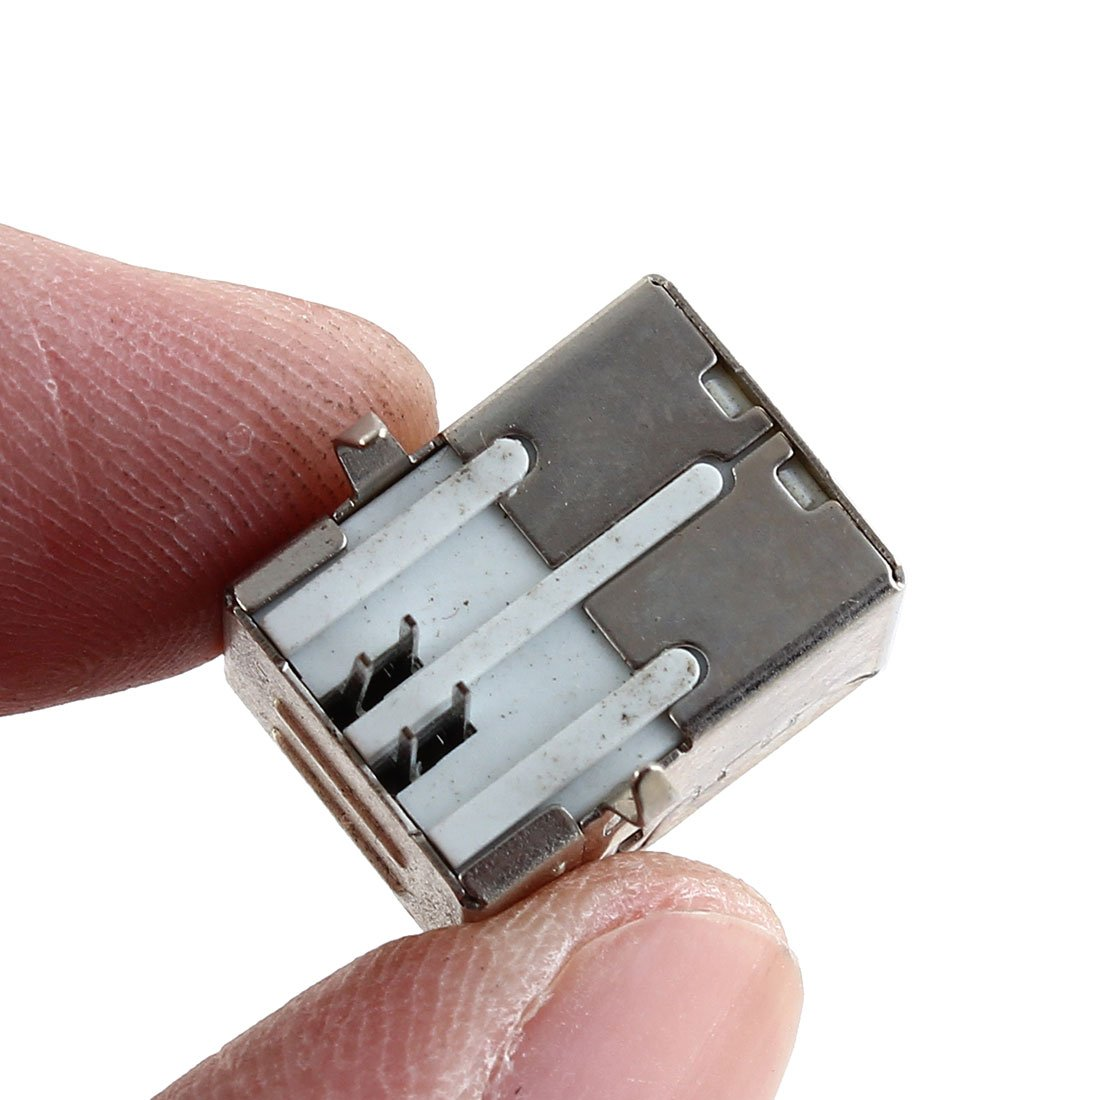 uxcell Shielded USB Type B Female Port 4 Pins PCB Mount Jack Connector Silver Tone by uxcell (Image #3)